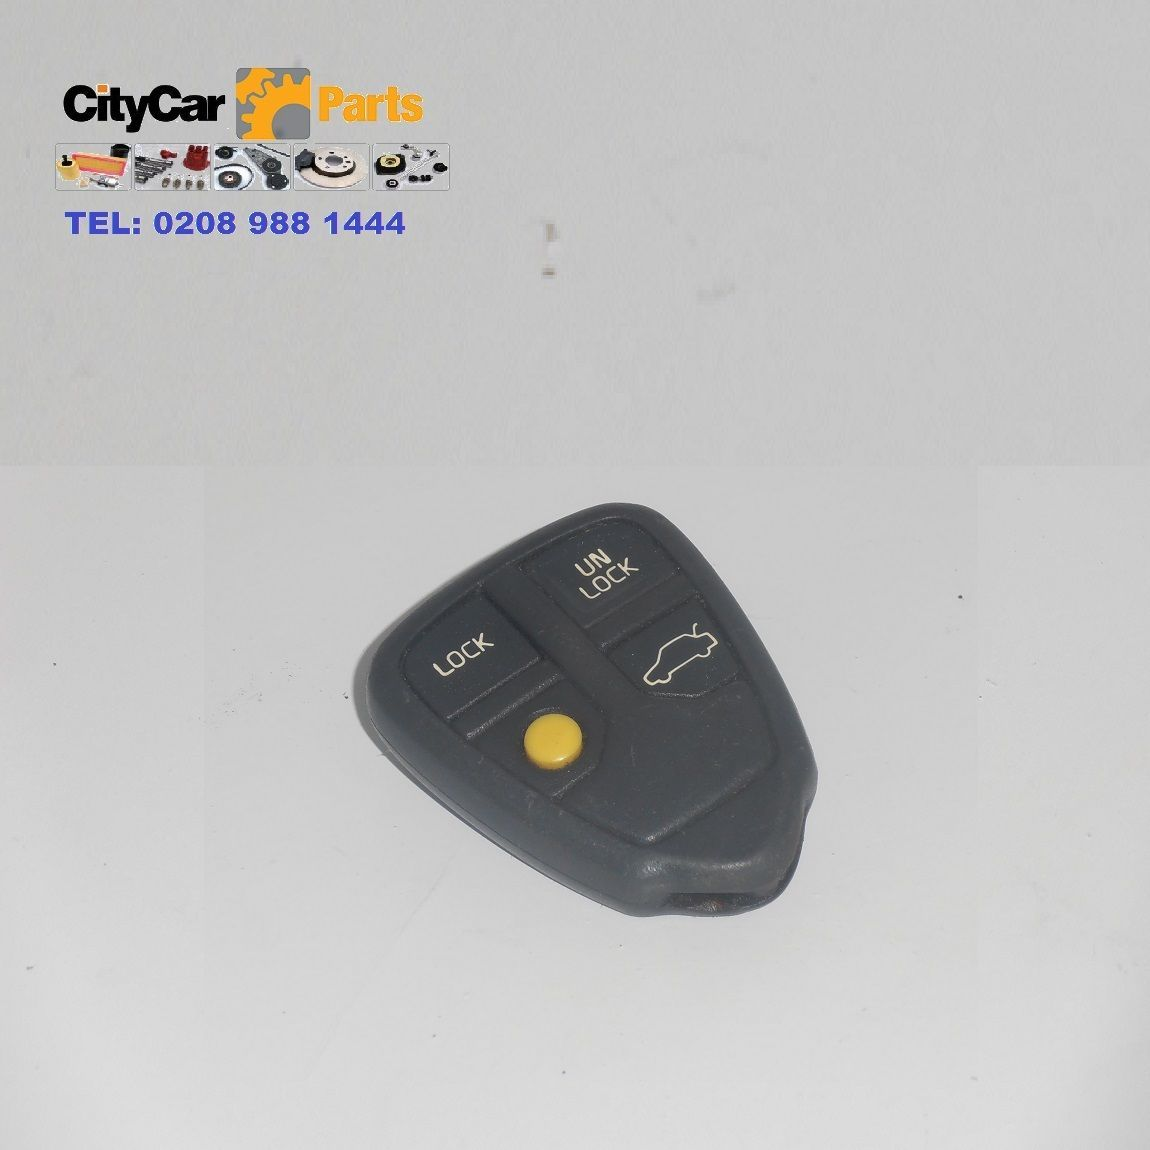 VOLVO S60 S80 V70 XC70 4 BUTTON REMOTE ALARM KEY FOB